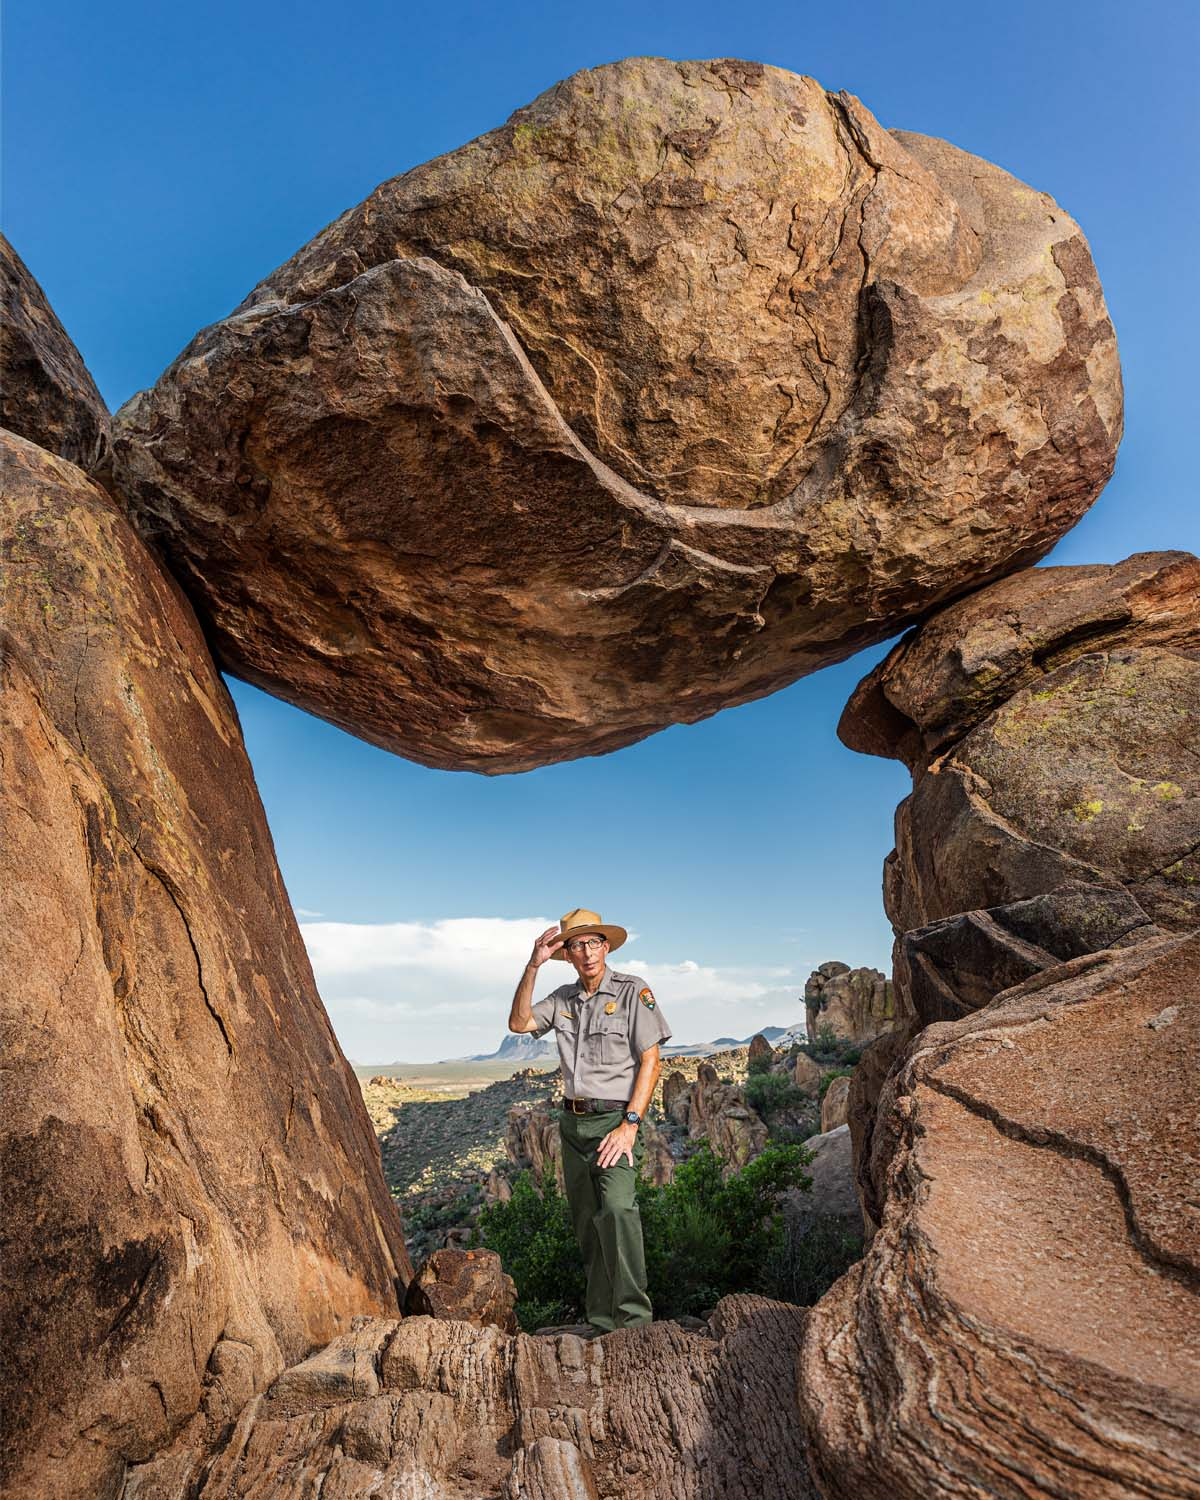 BOB KRUMENAKER, BIG BEND NATIONAL PARK SUPERINTENDENT